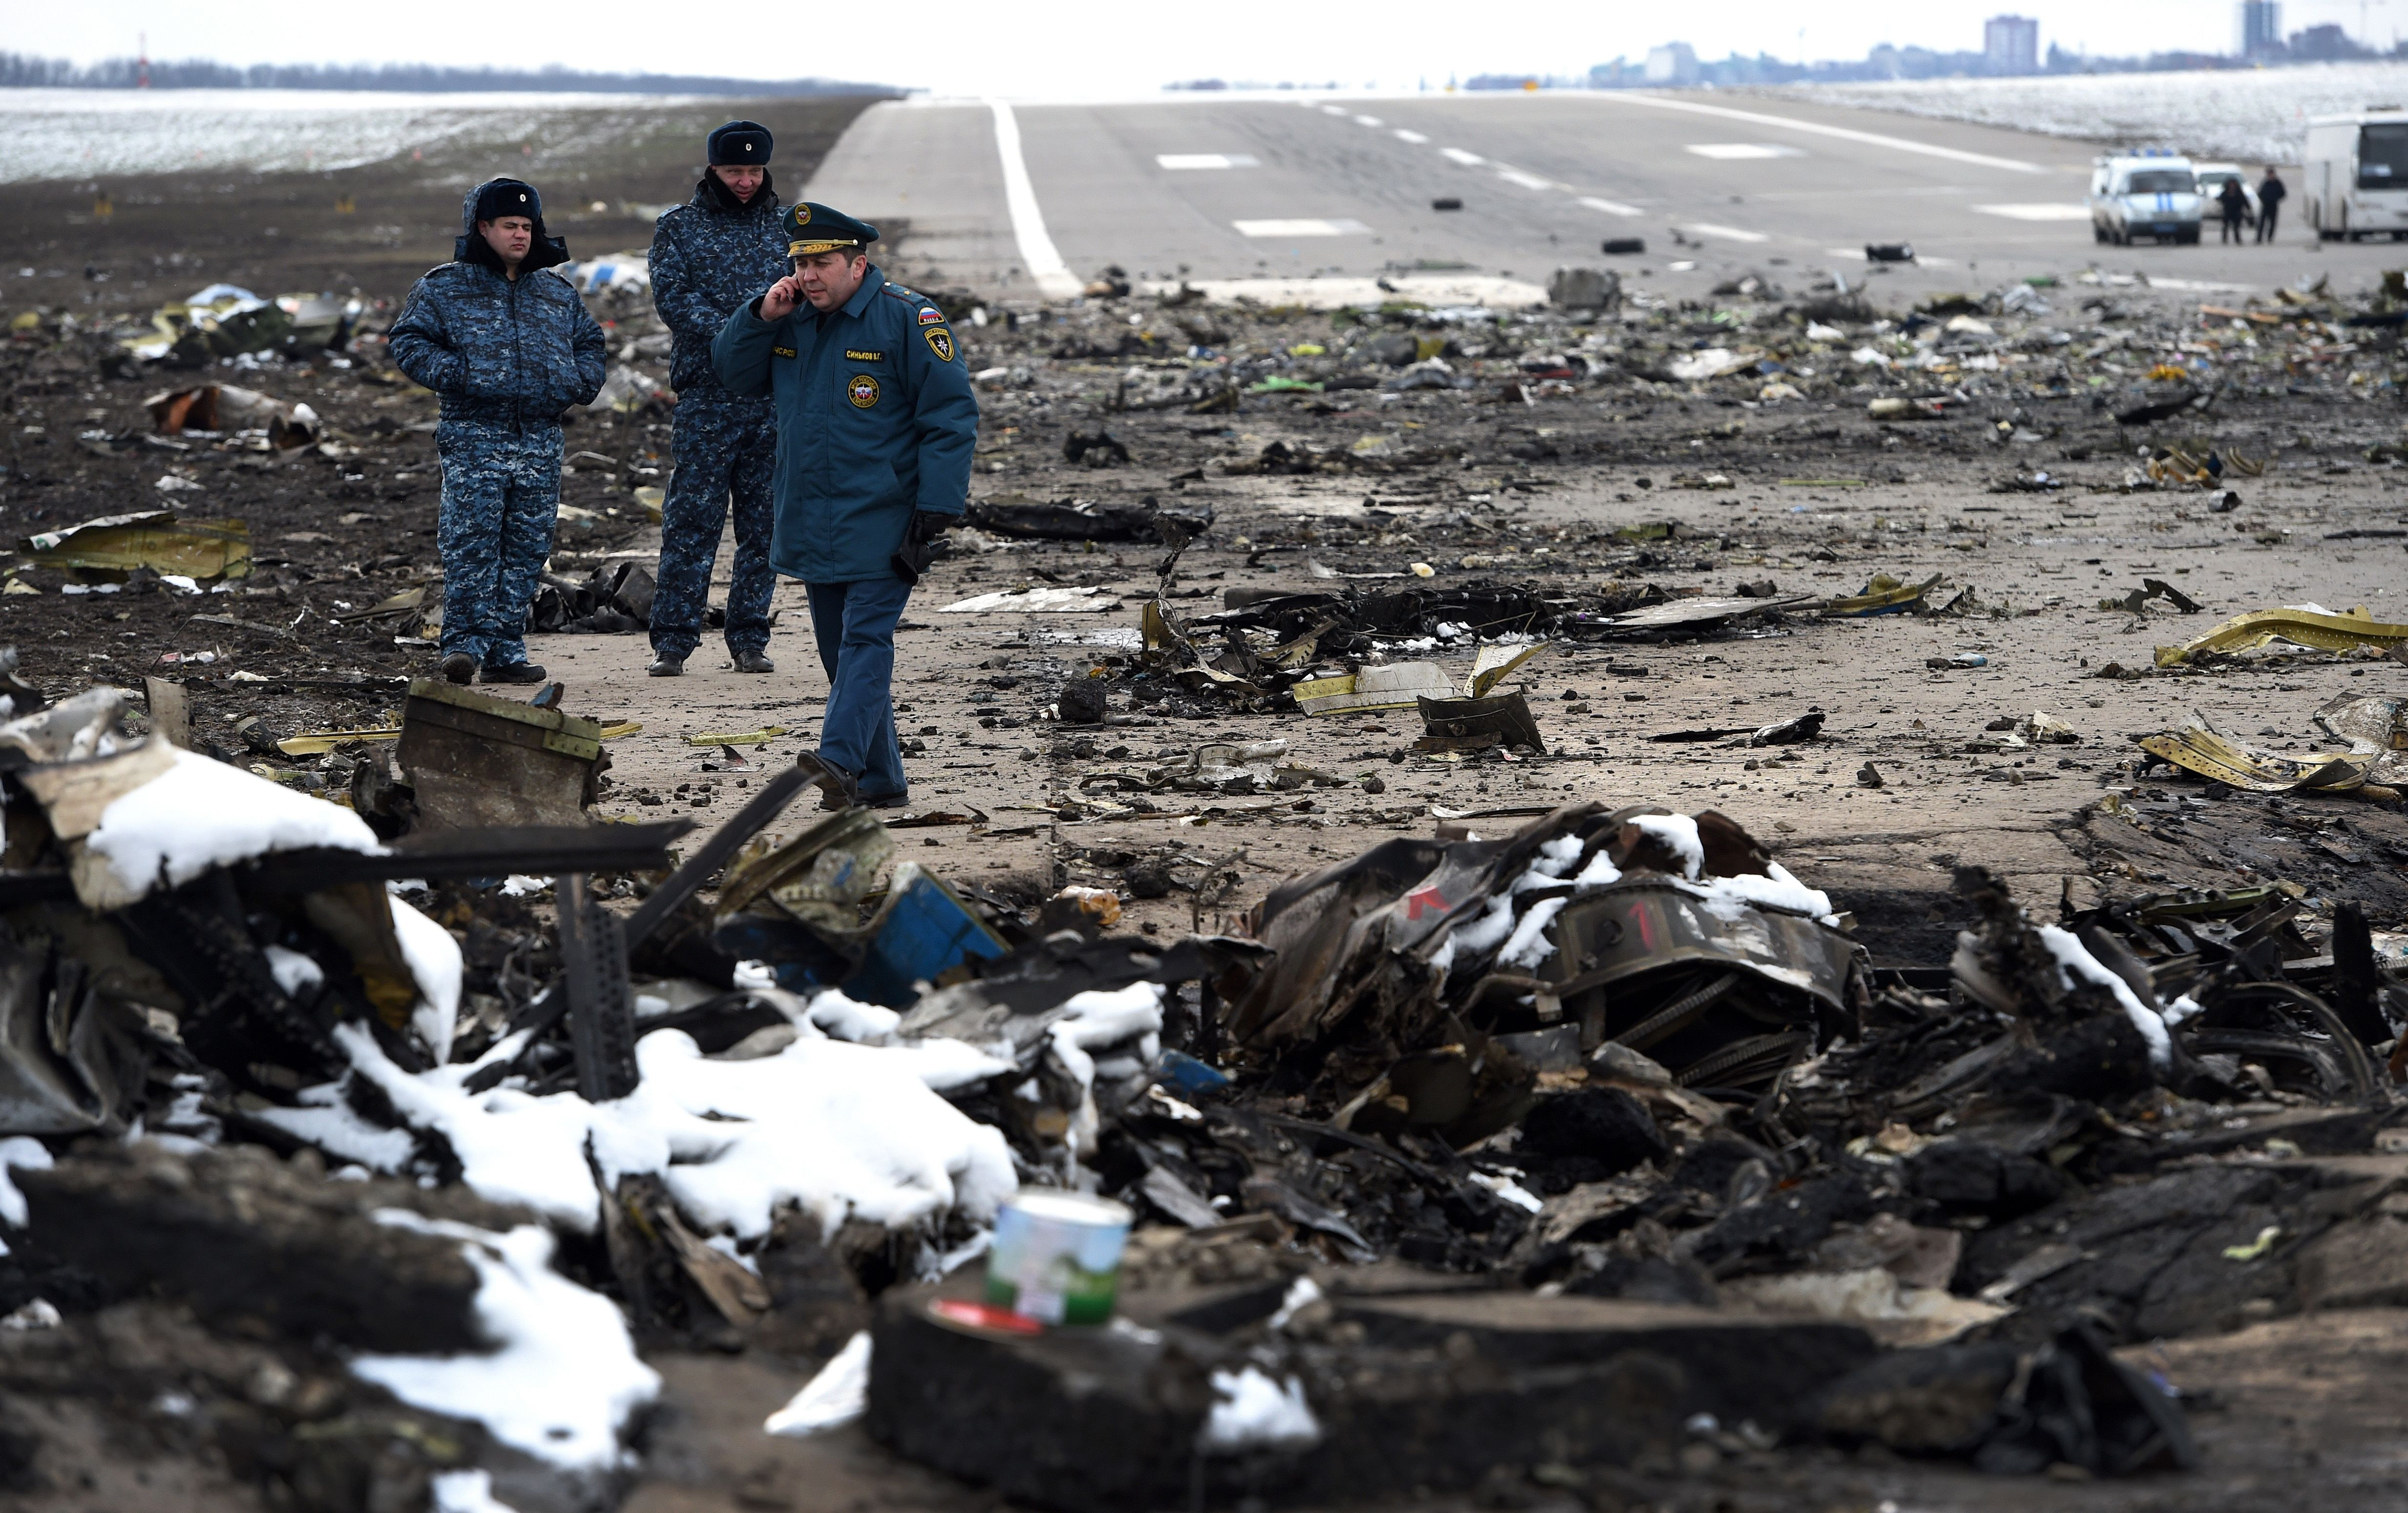 After Ethiopian Air disaster, a look at where plane crashes most